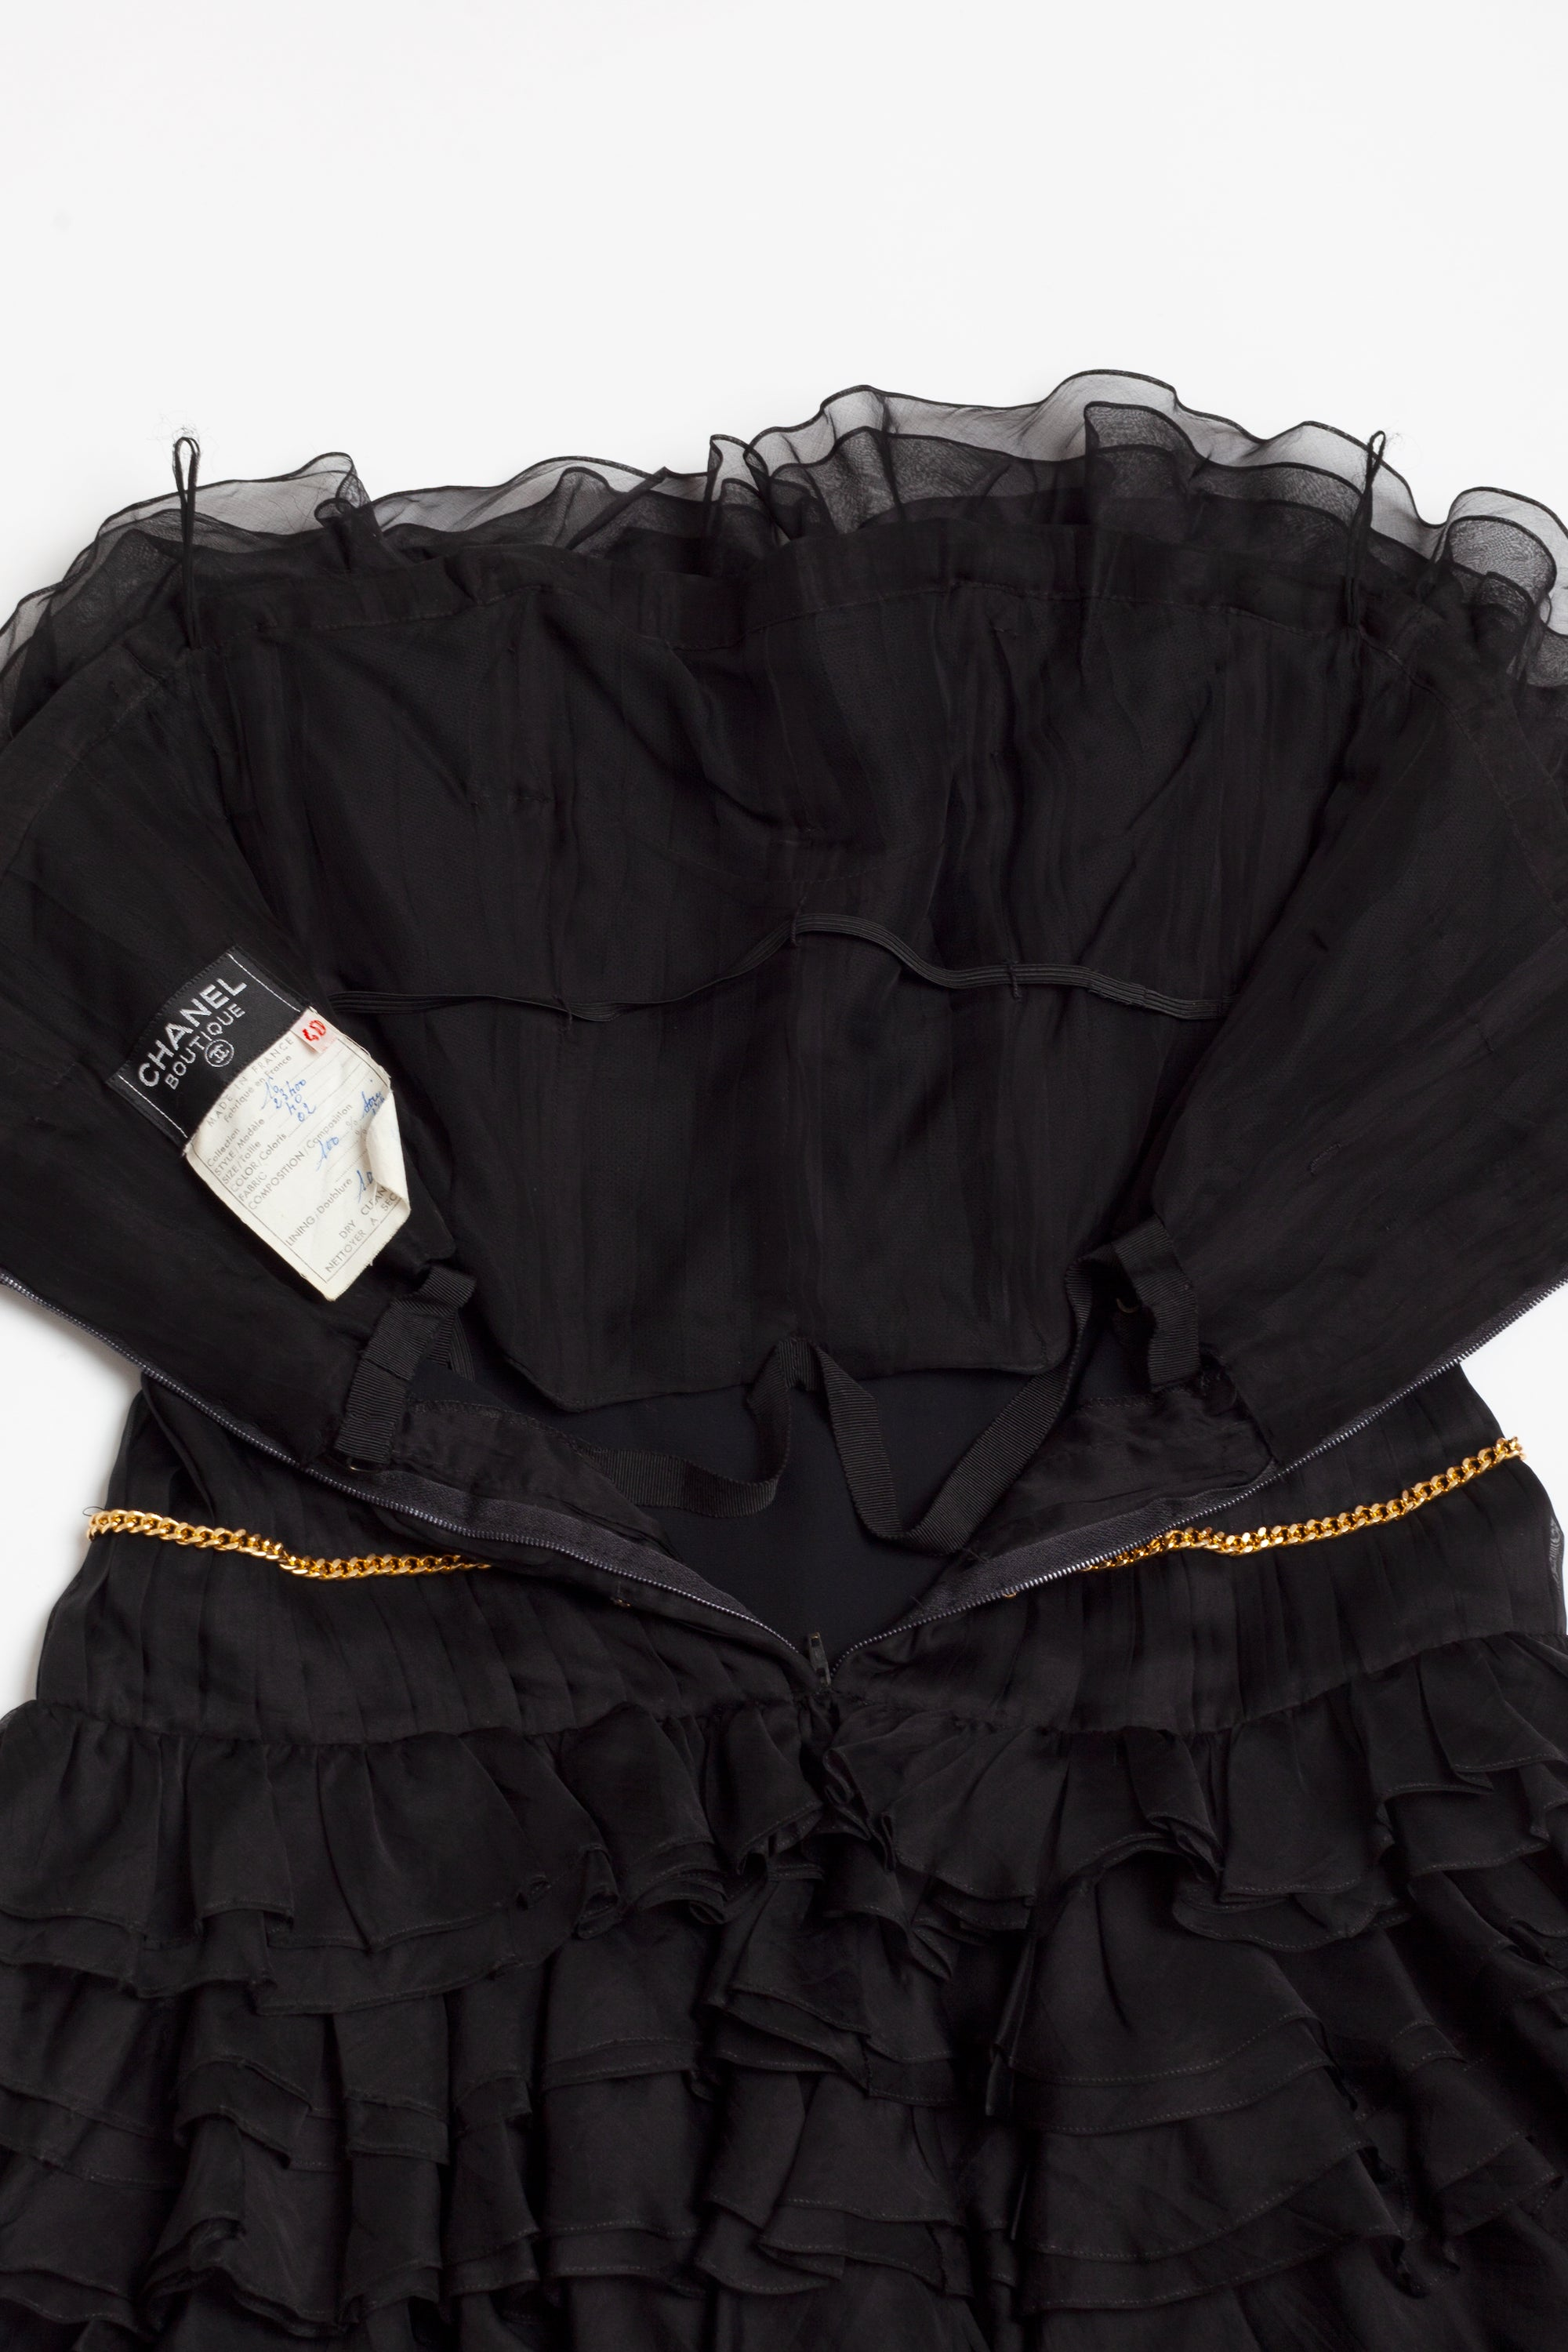 Chanel <br> S/S 1988 silk cocktail dress with pleats, ruffles & gold chains